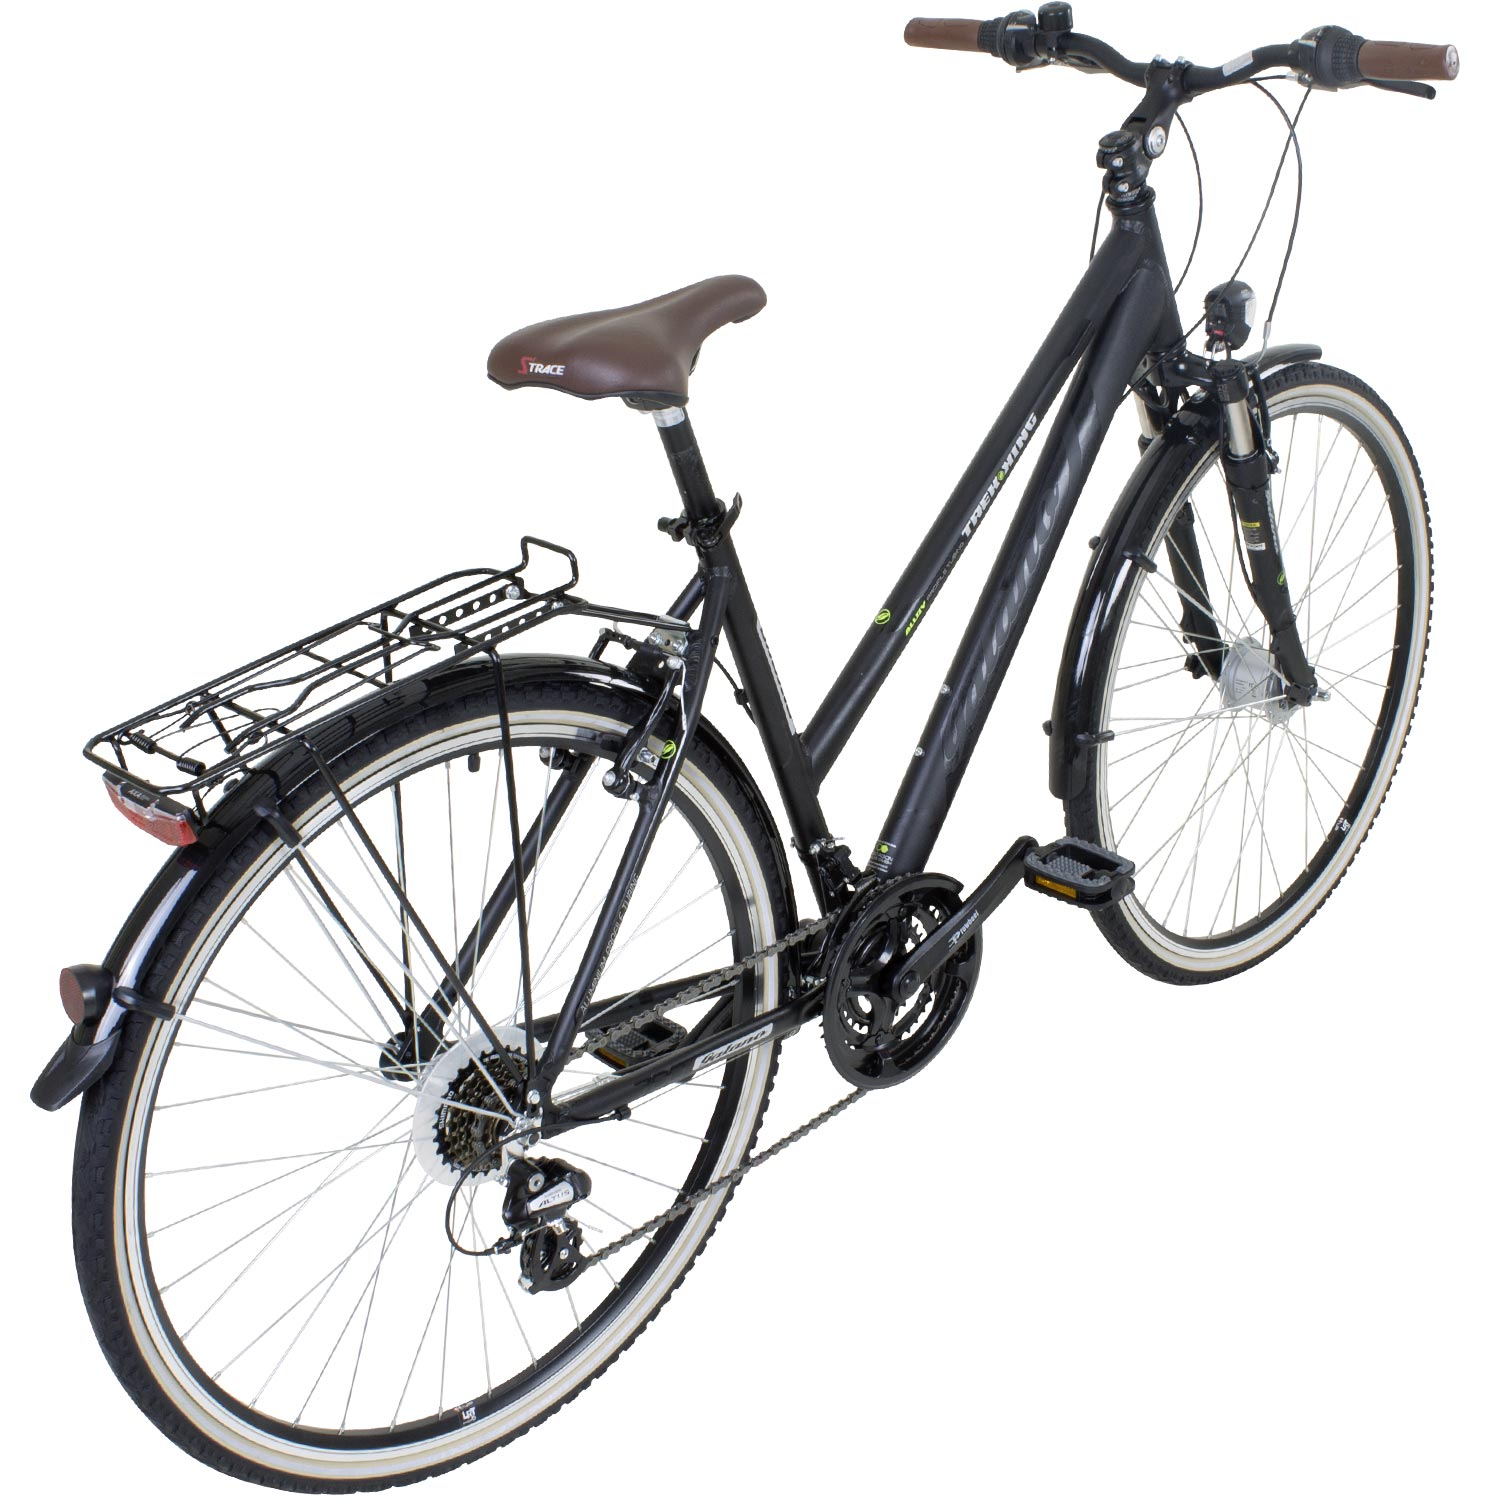 28 zoll galano damen alu trekking rad bike fahrrad shimano. Black Bedroom Furniture Sets. Home Design Ideas